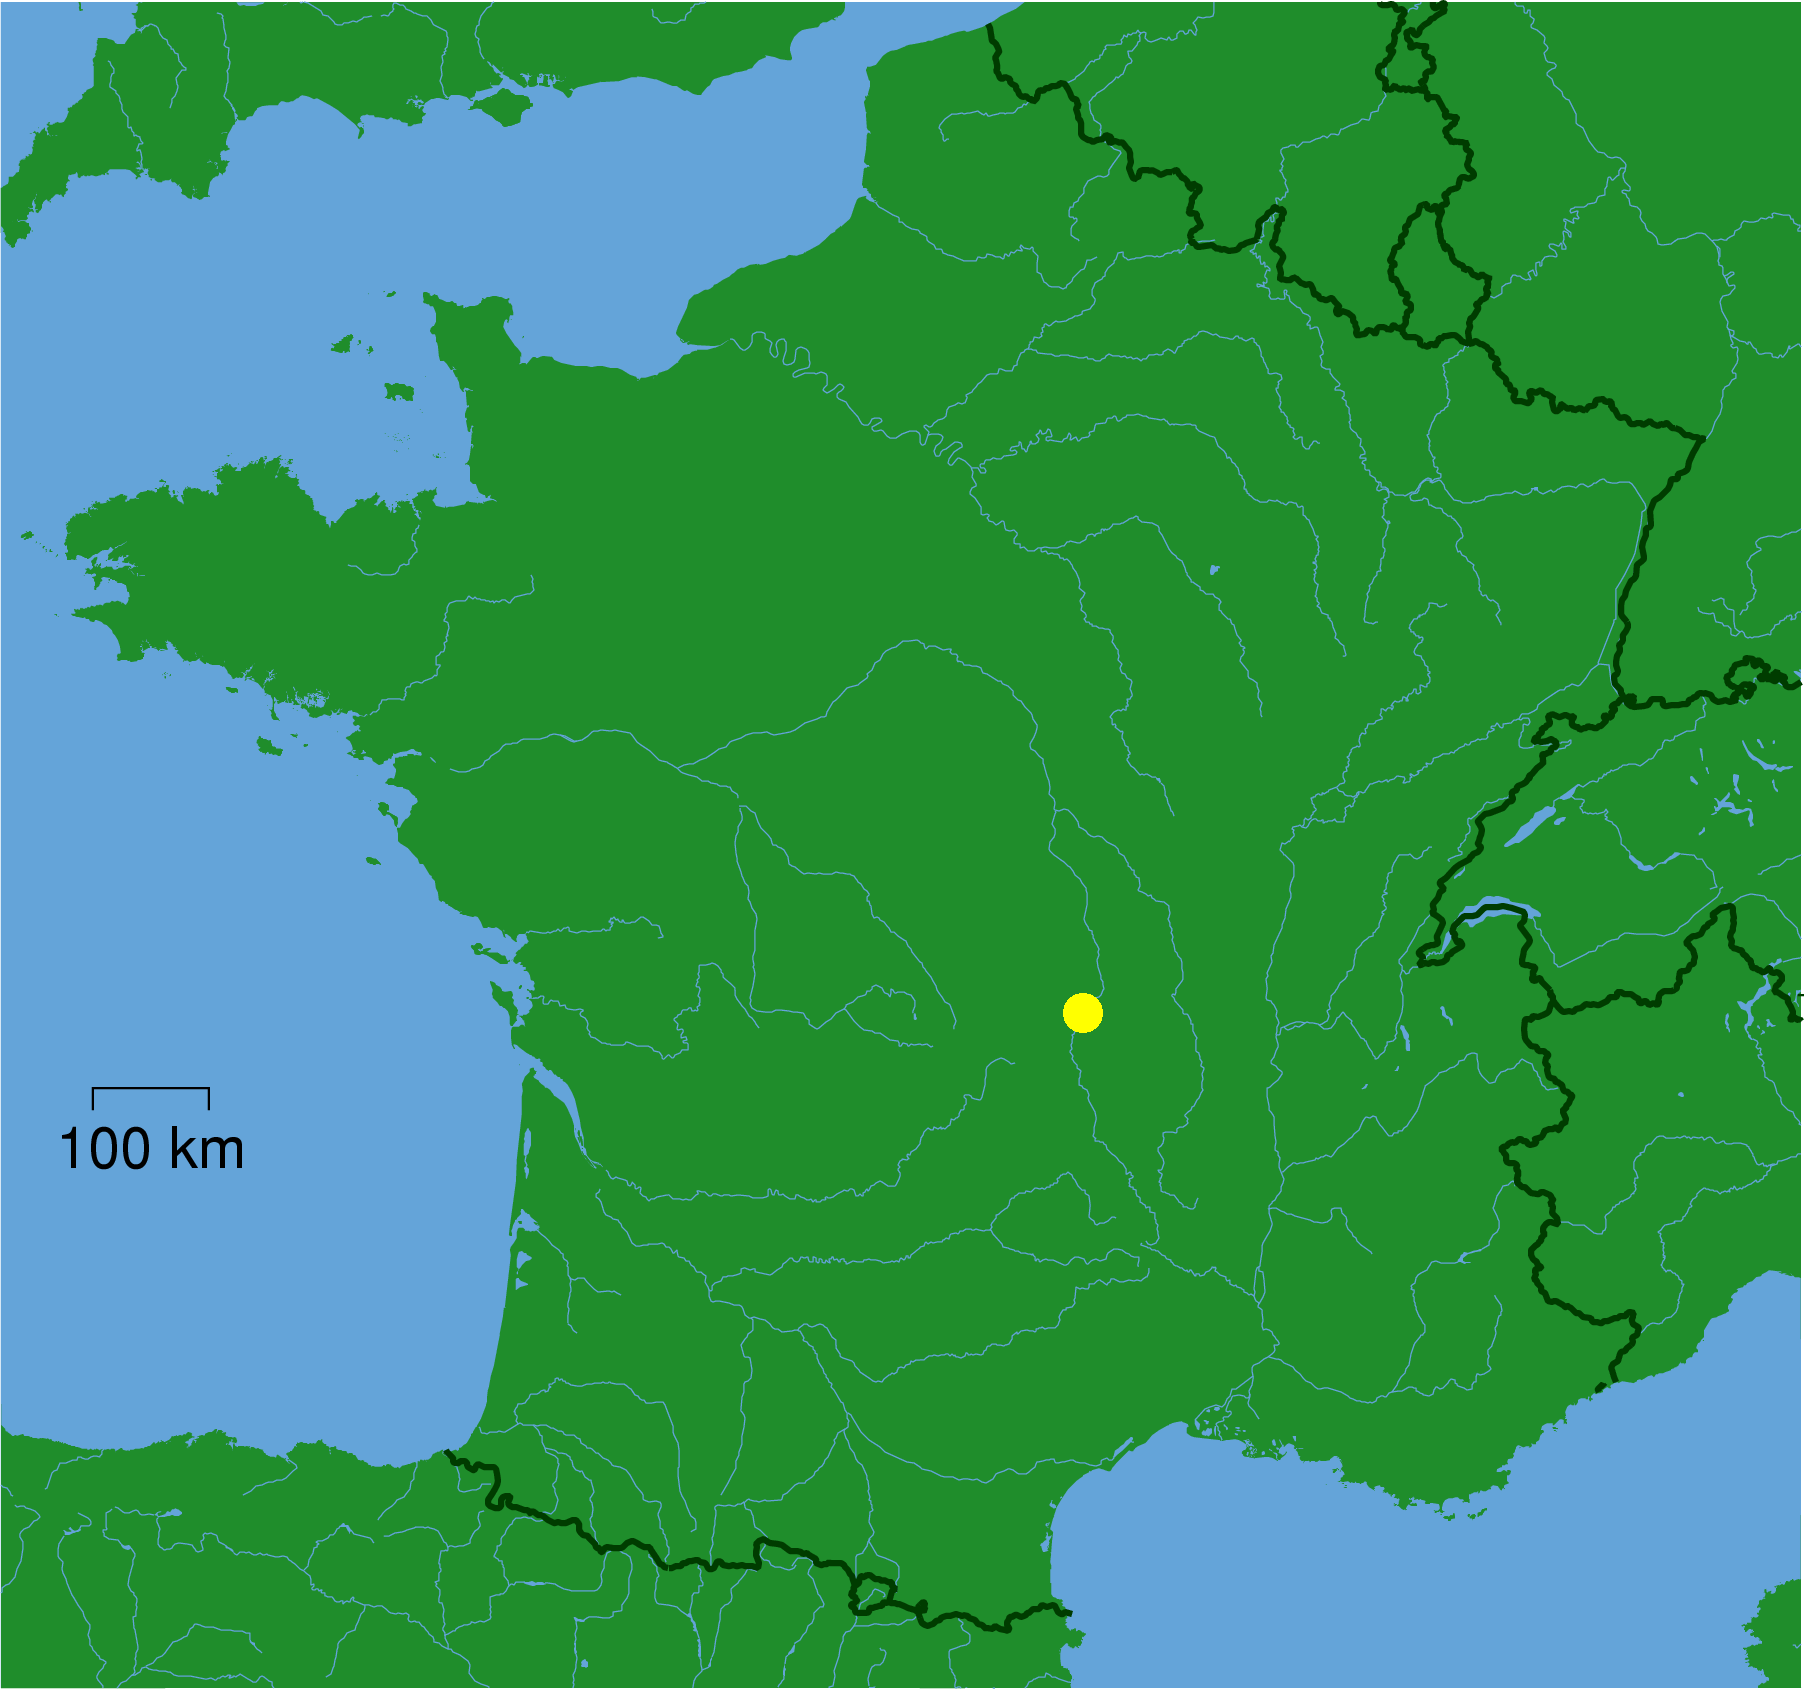 FileClermontferrand carte situationpng  Wikimedia Commons